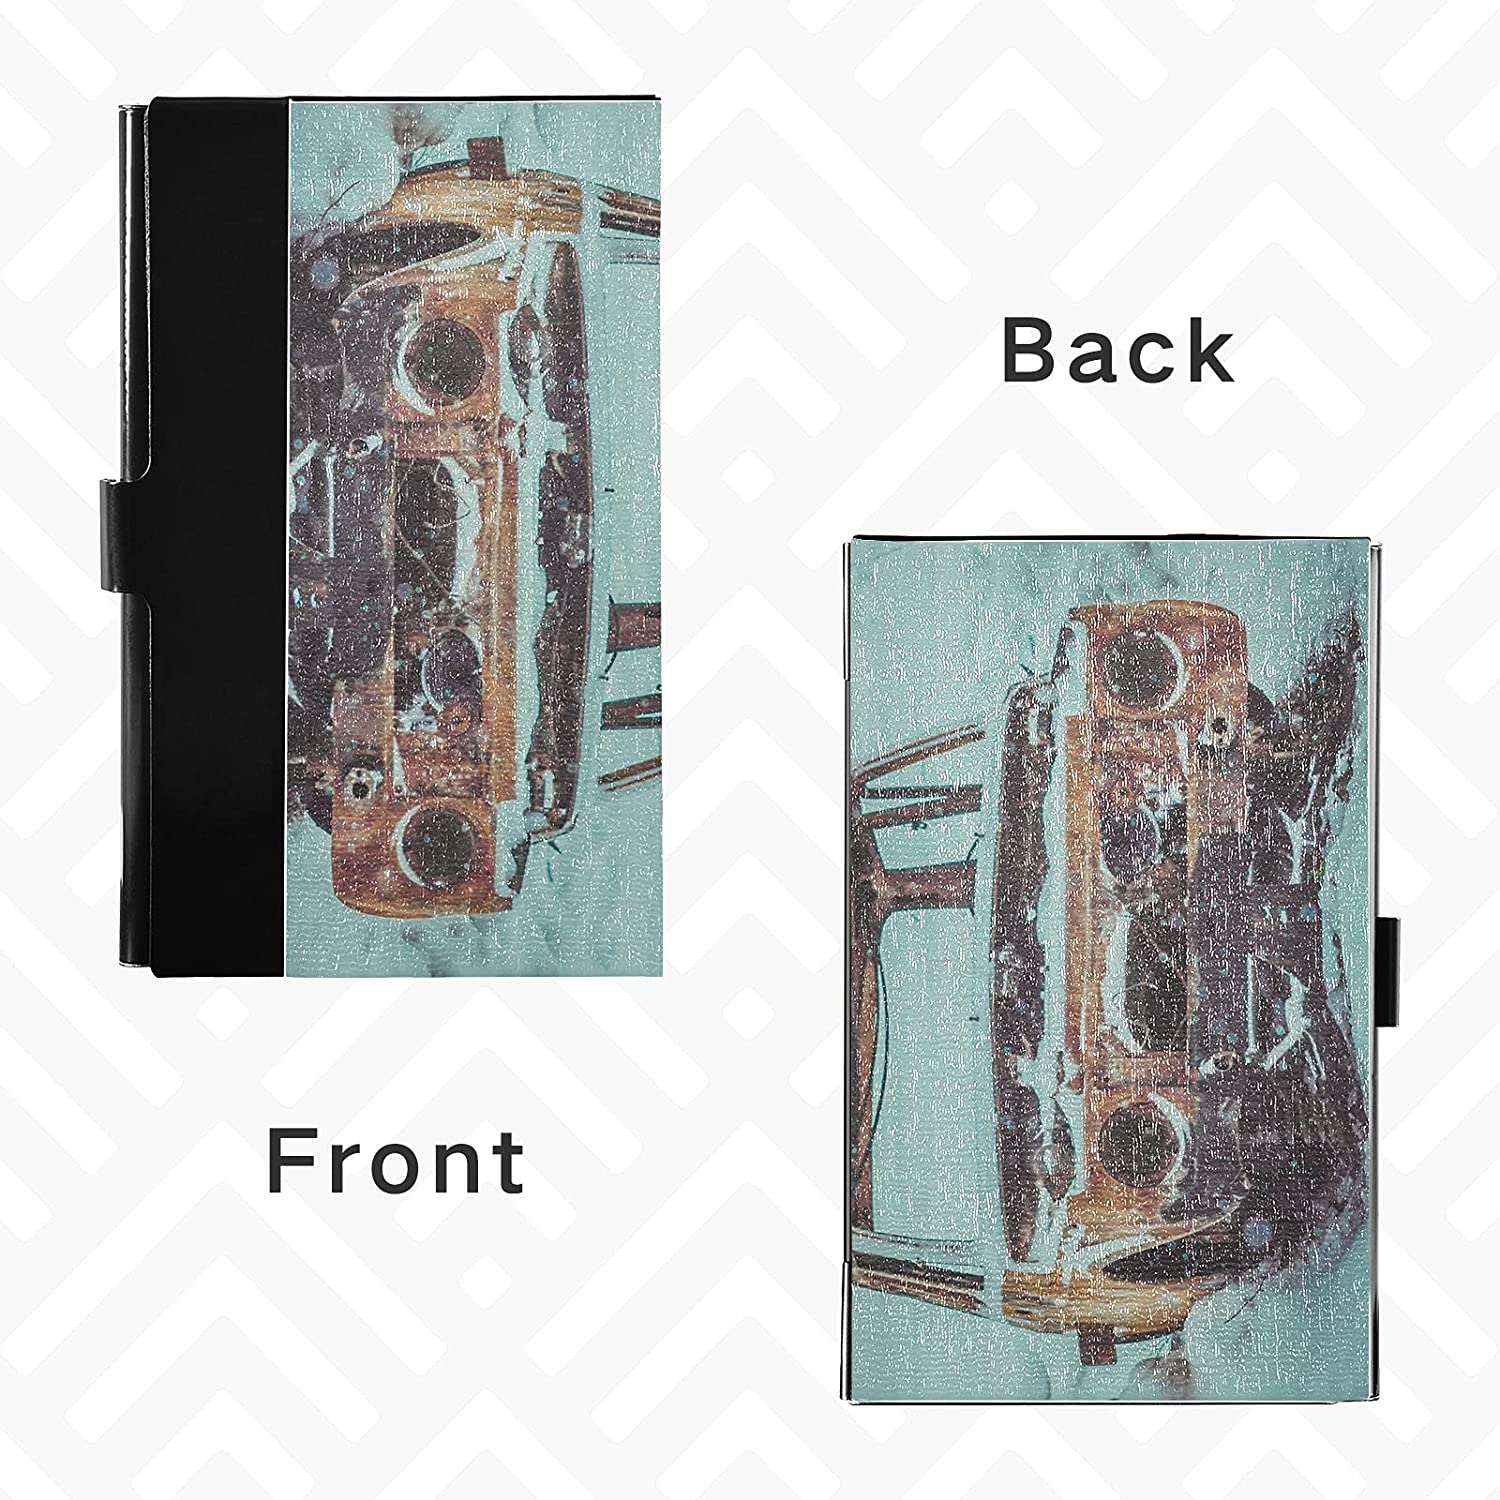 OTVEE Broken Car in Snow Business Card Holder Wallet Stainless Steel & Leather Pocket Business Card Case Organizer Slim Name Card ID Card Holders Credit Card Wallet Carrier Purse for Women Men